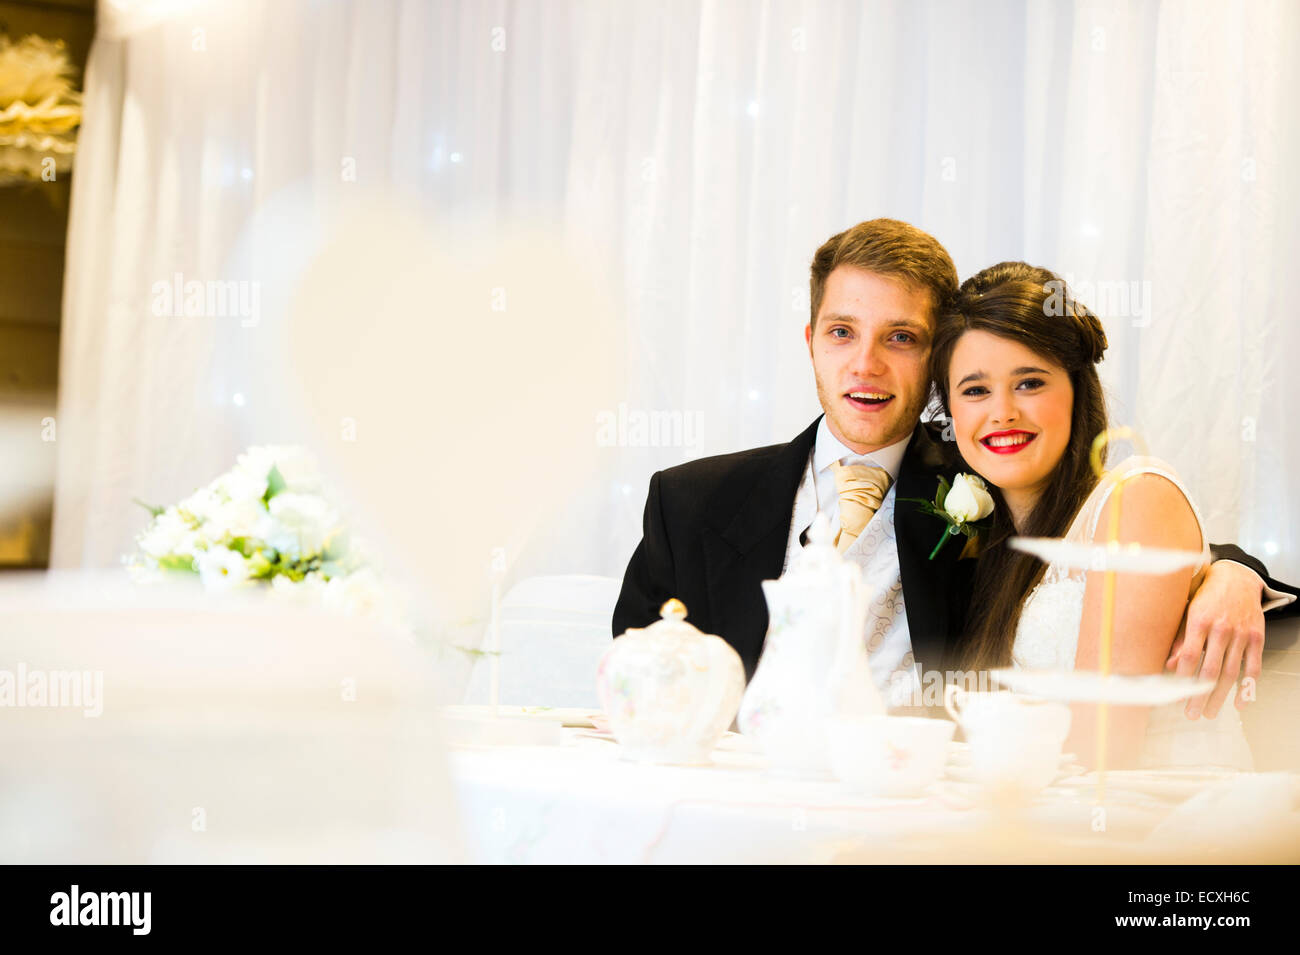 Getting Married Wedding Day Uk The Happy Young Pretty Bride And